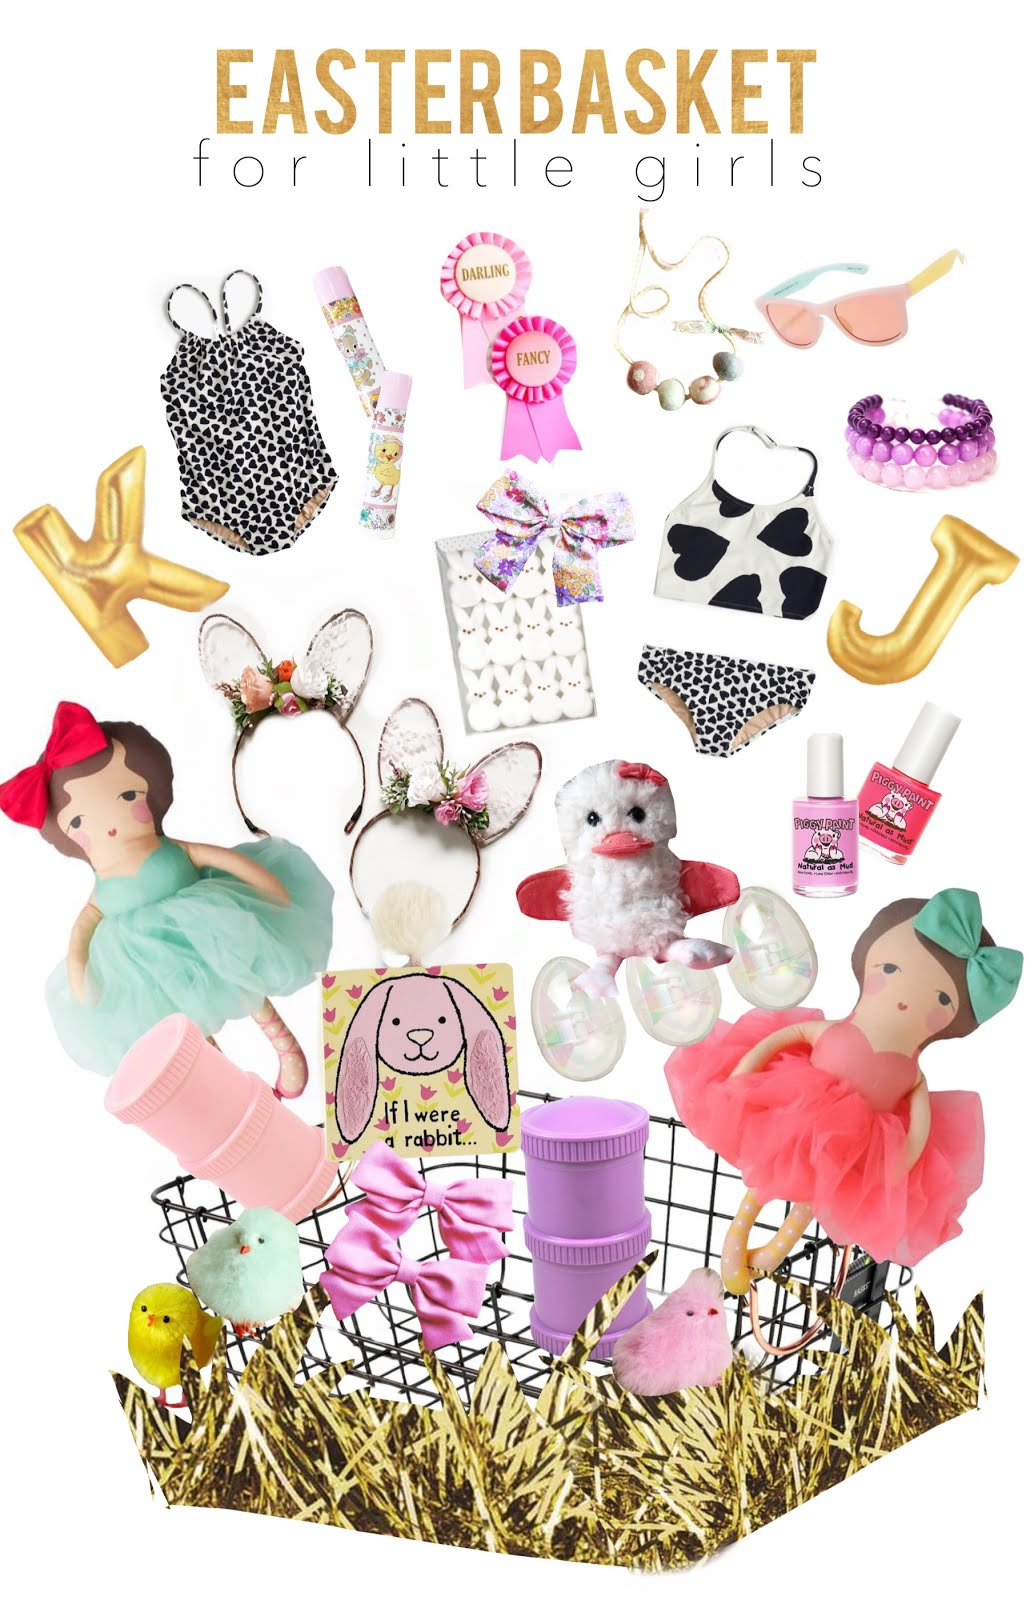 A little jk easter basket ideas for your little girls seeing you put together little holiday breakfast set ups fun decor and celebrating all these fun holidays with things that i actually shared with you negle Choice Image